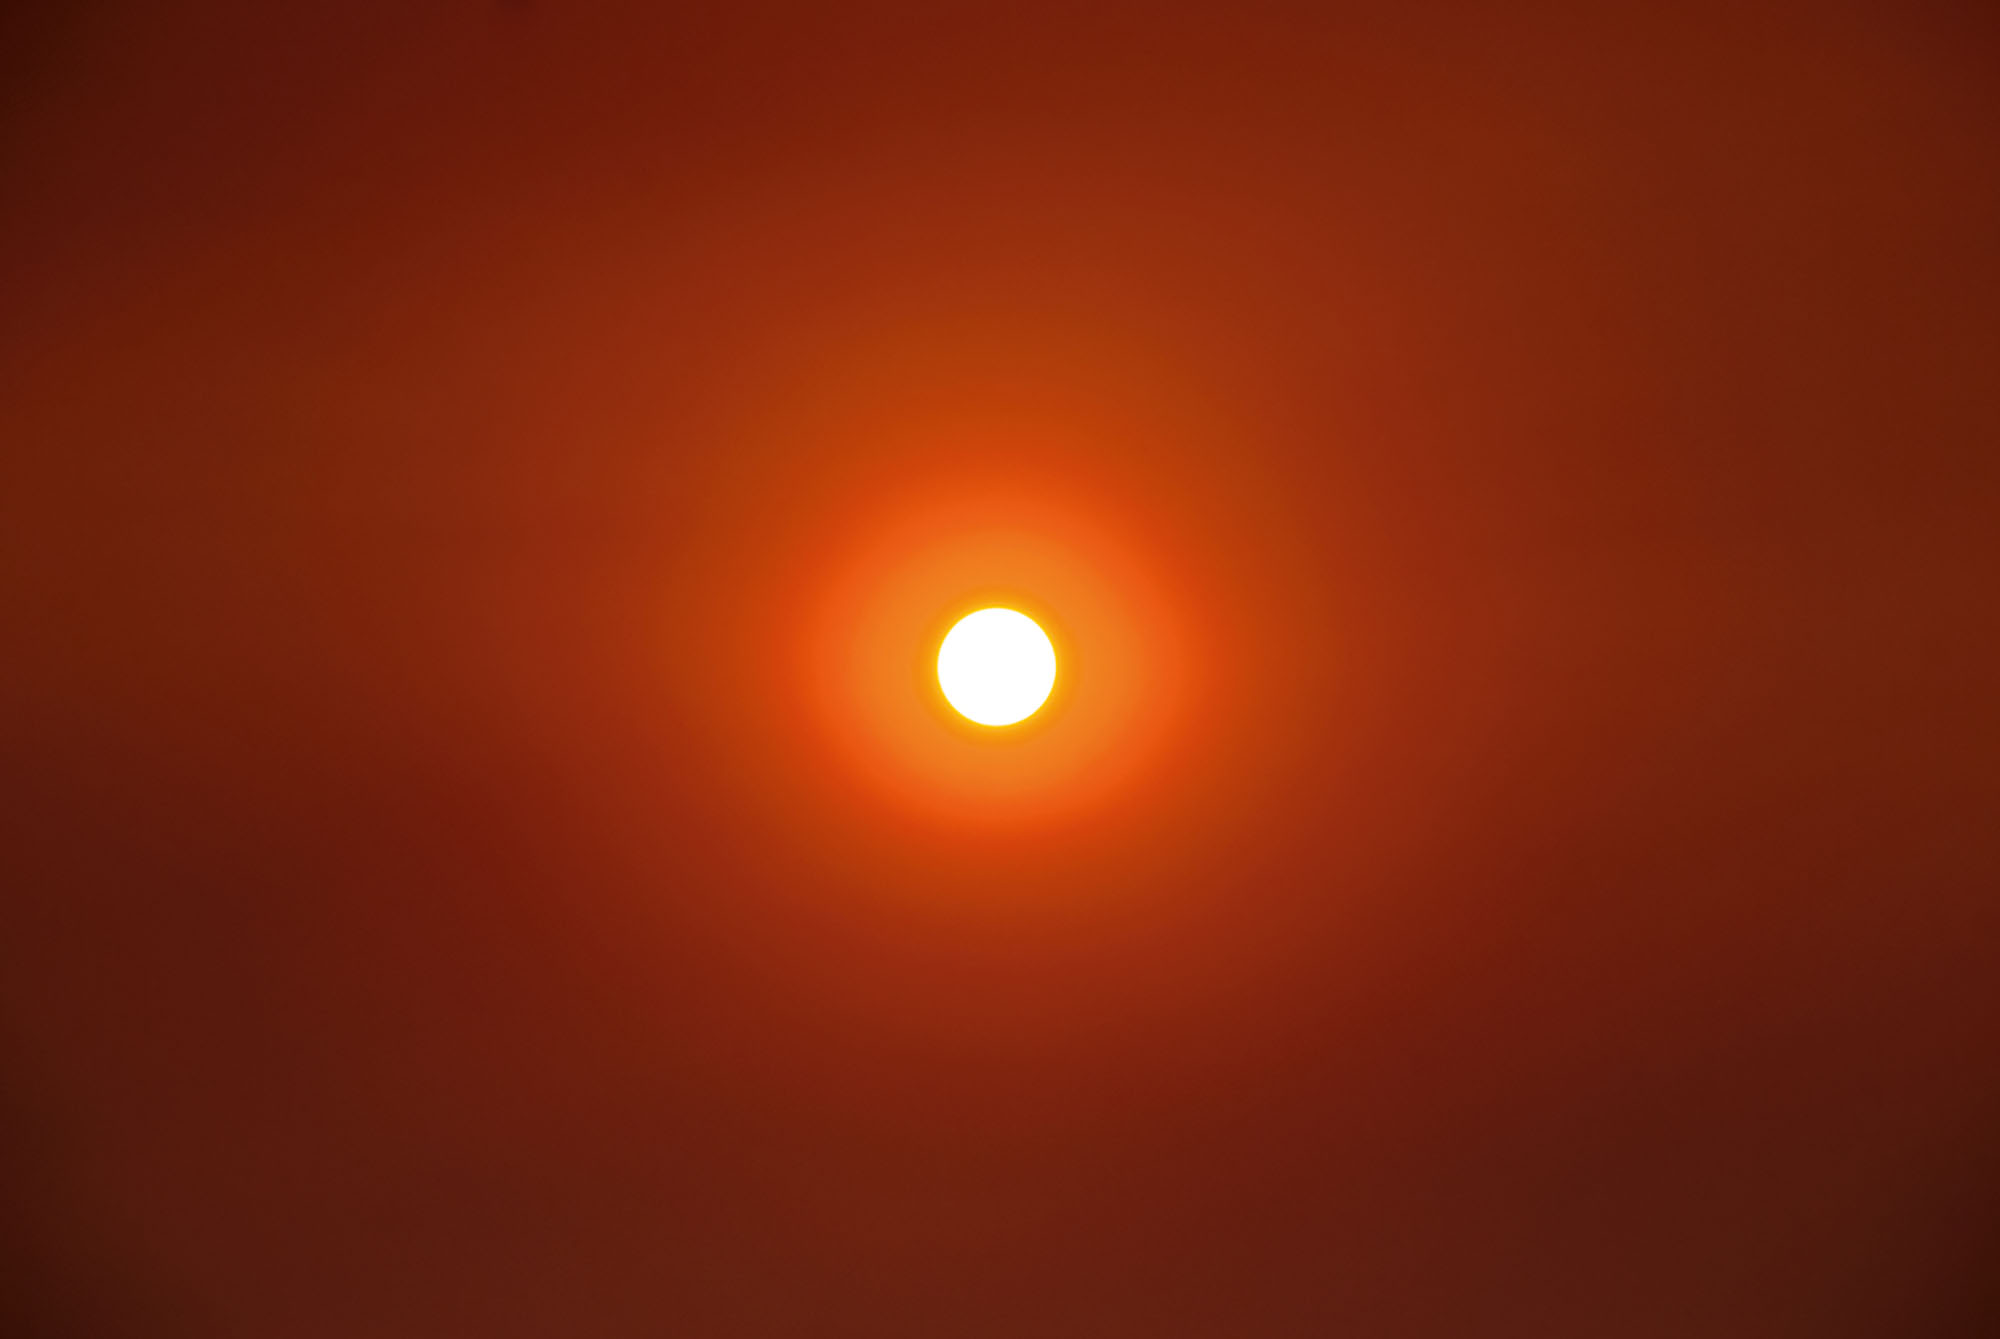 Nicholas Mangan, *Friday the 13th*, 2009, C-type print, 98.5 × 68.5 cm. Picture of the sun on the 13th of February, seven days after the Black Saturday bush fires in Victoria, Australia.